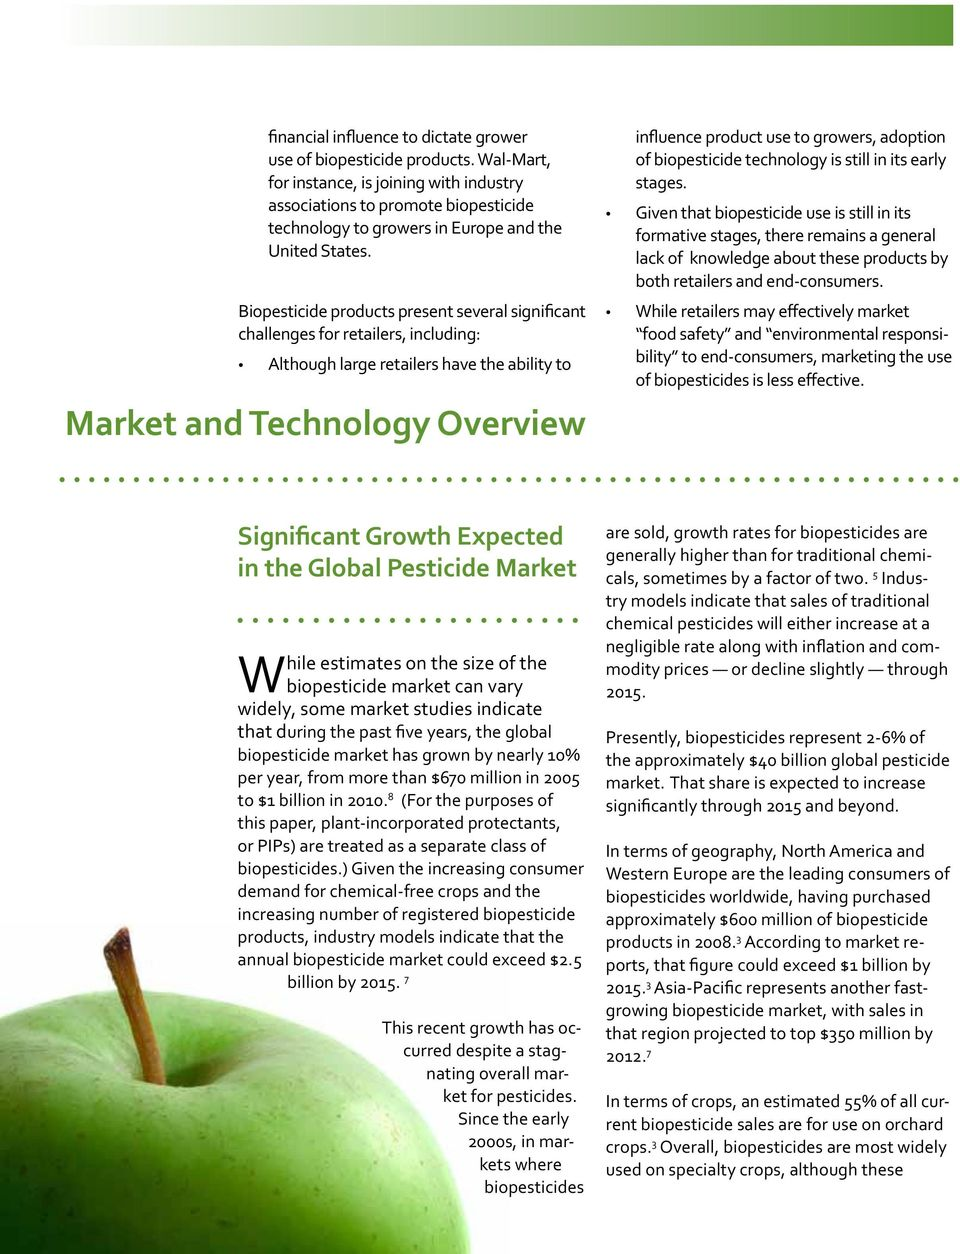 Biopesticide products present several significant challenges for retailers, including: Although large retailers have the ability to Market and Technology Overview influence product use to growers,